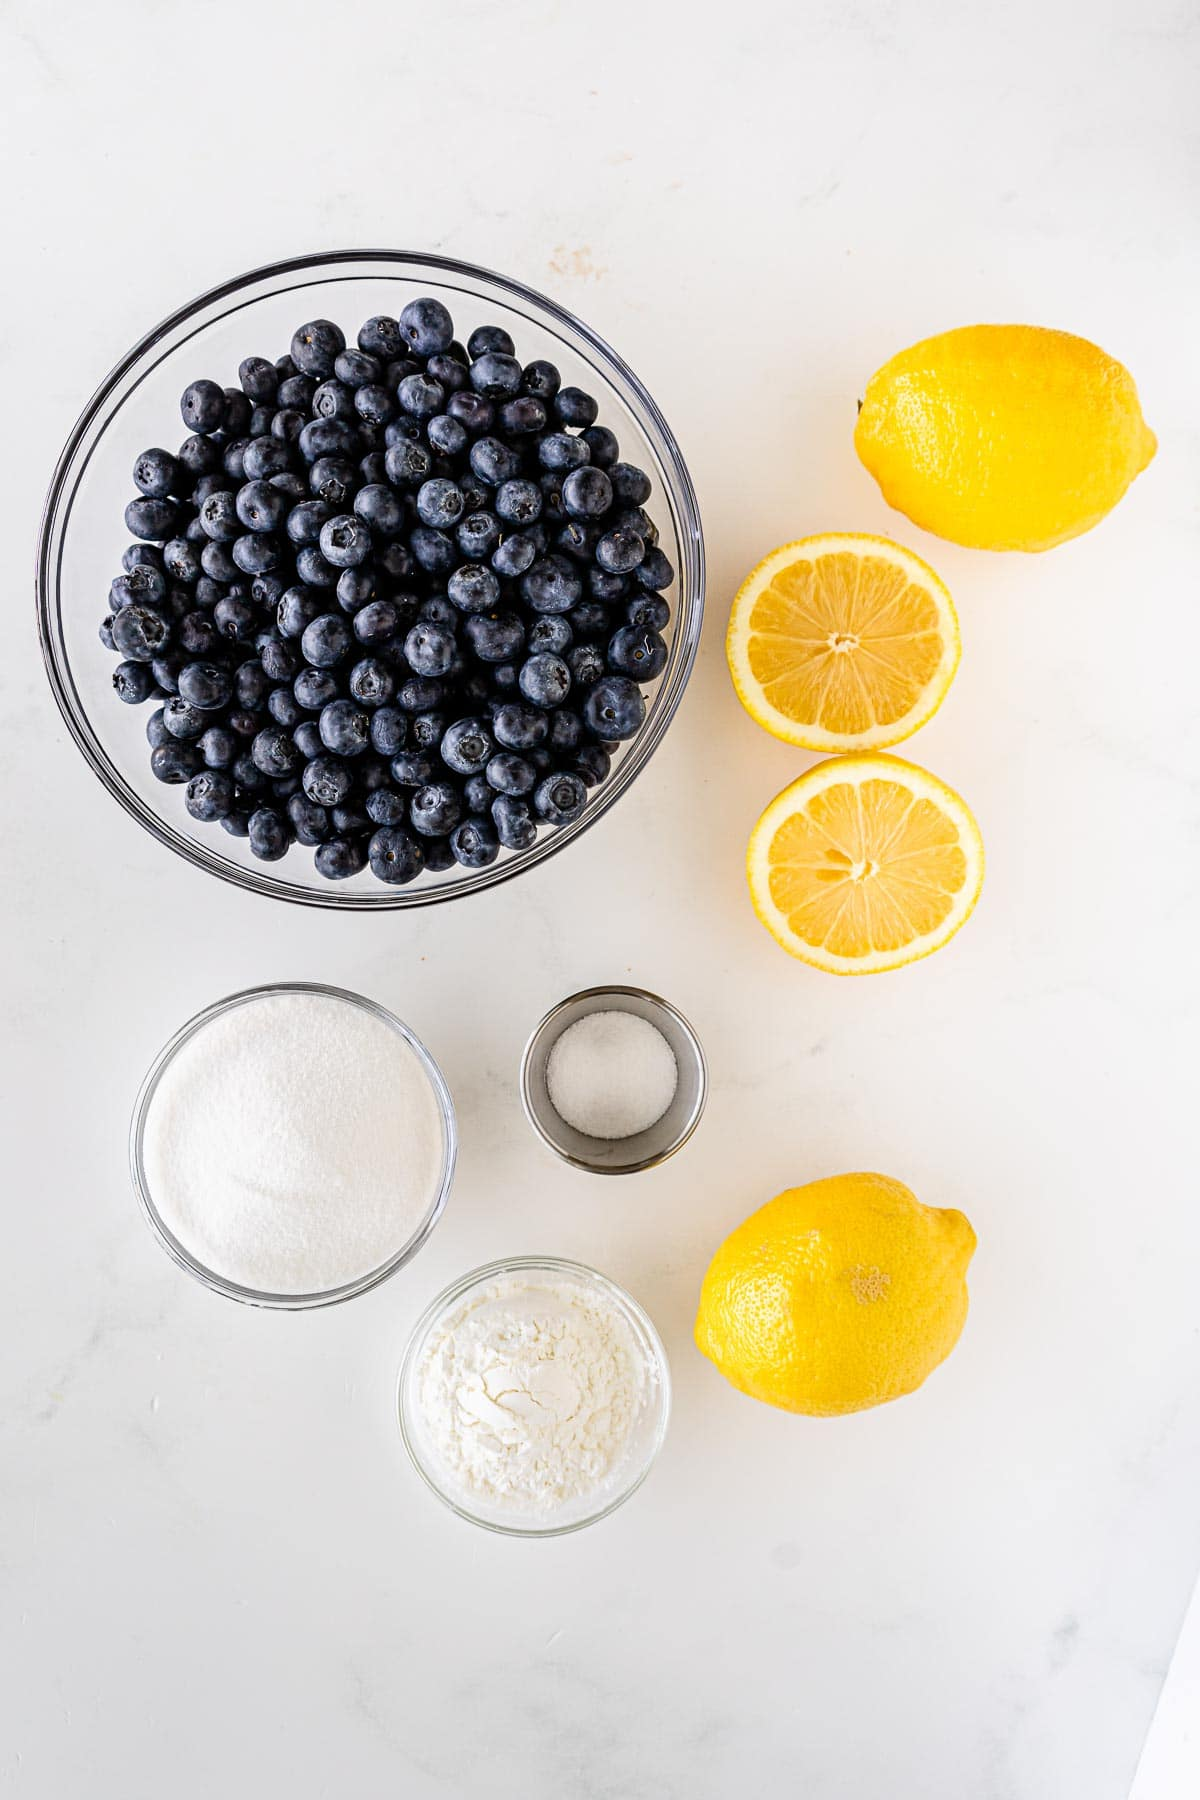 a bowl of blueberries, lemons, and bowls of corn starch and sugar